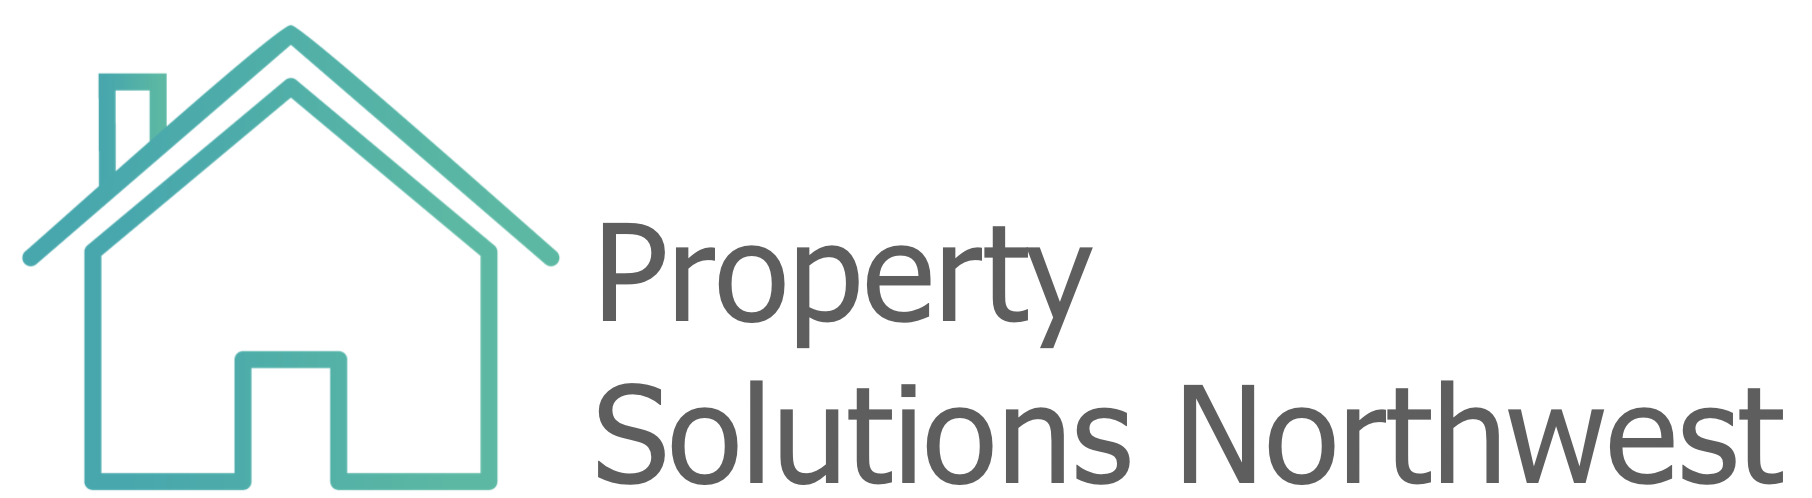 Property Solutions Northwest  logo